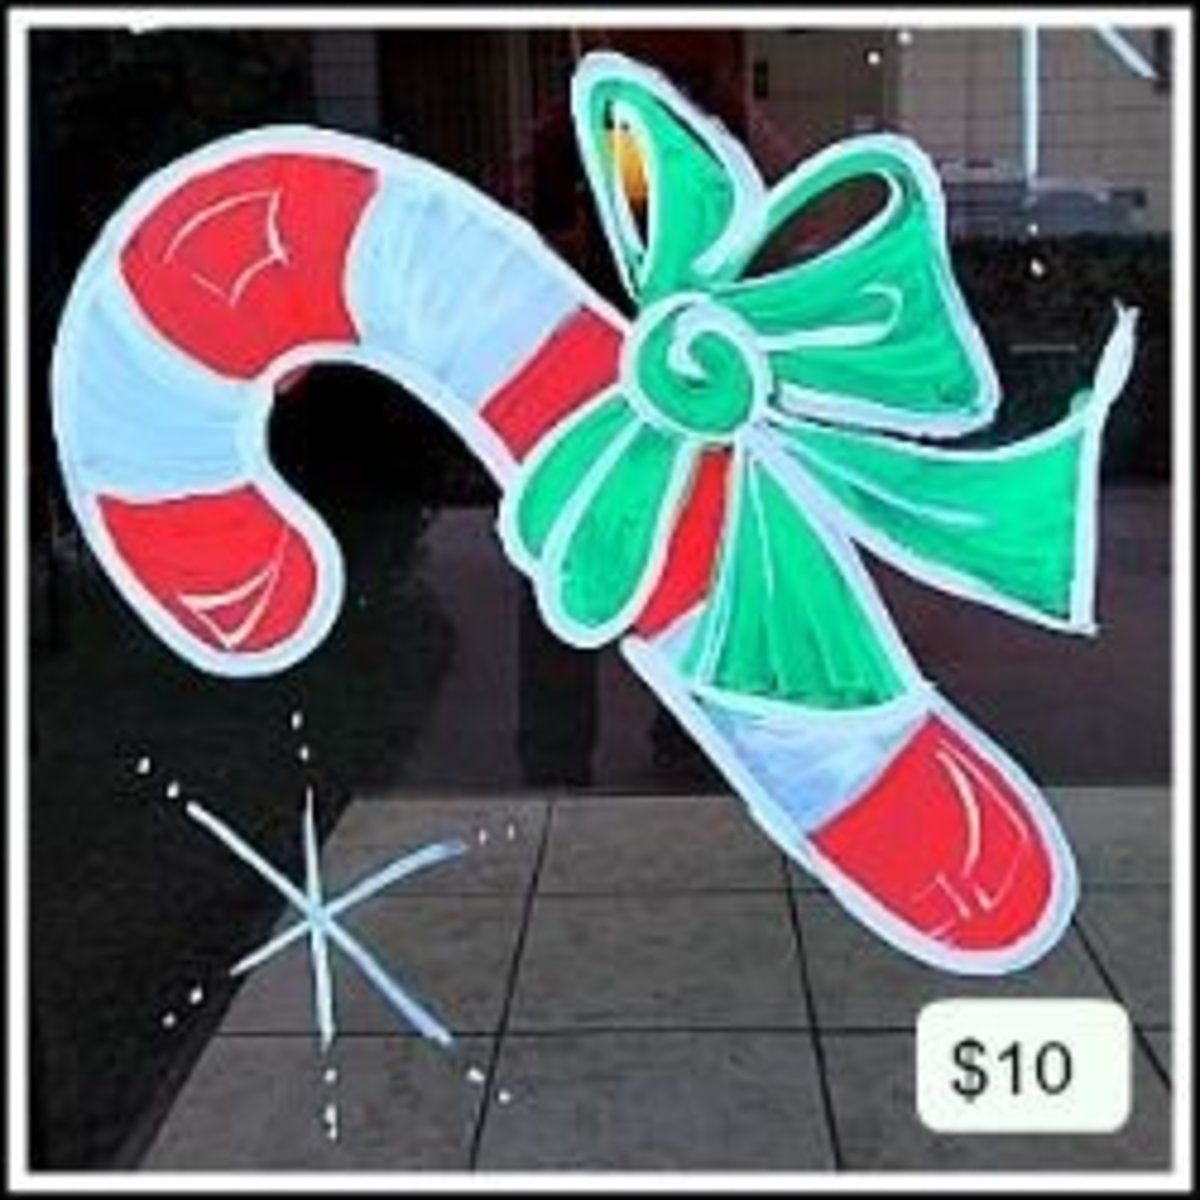 Candy Cane - Window Painting Design Pricing - Image: M Burgess